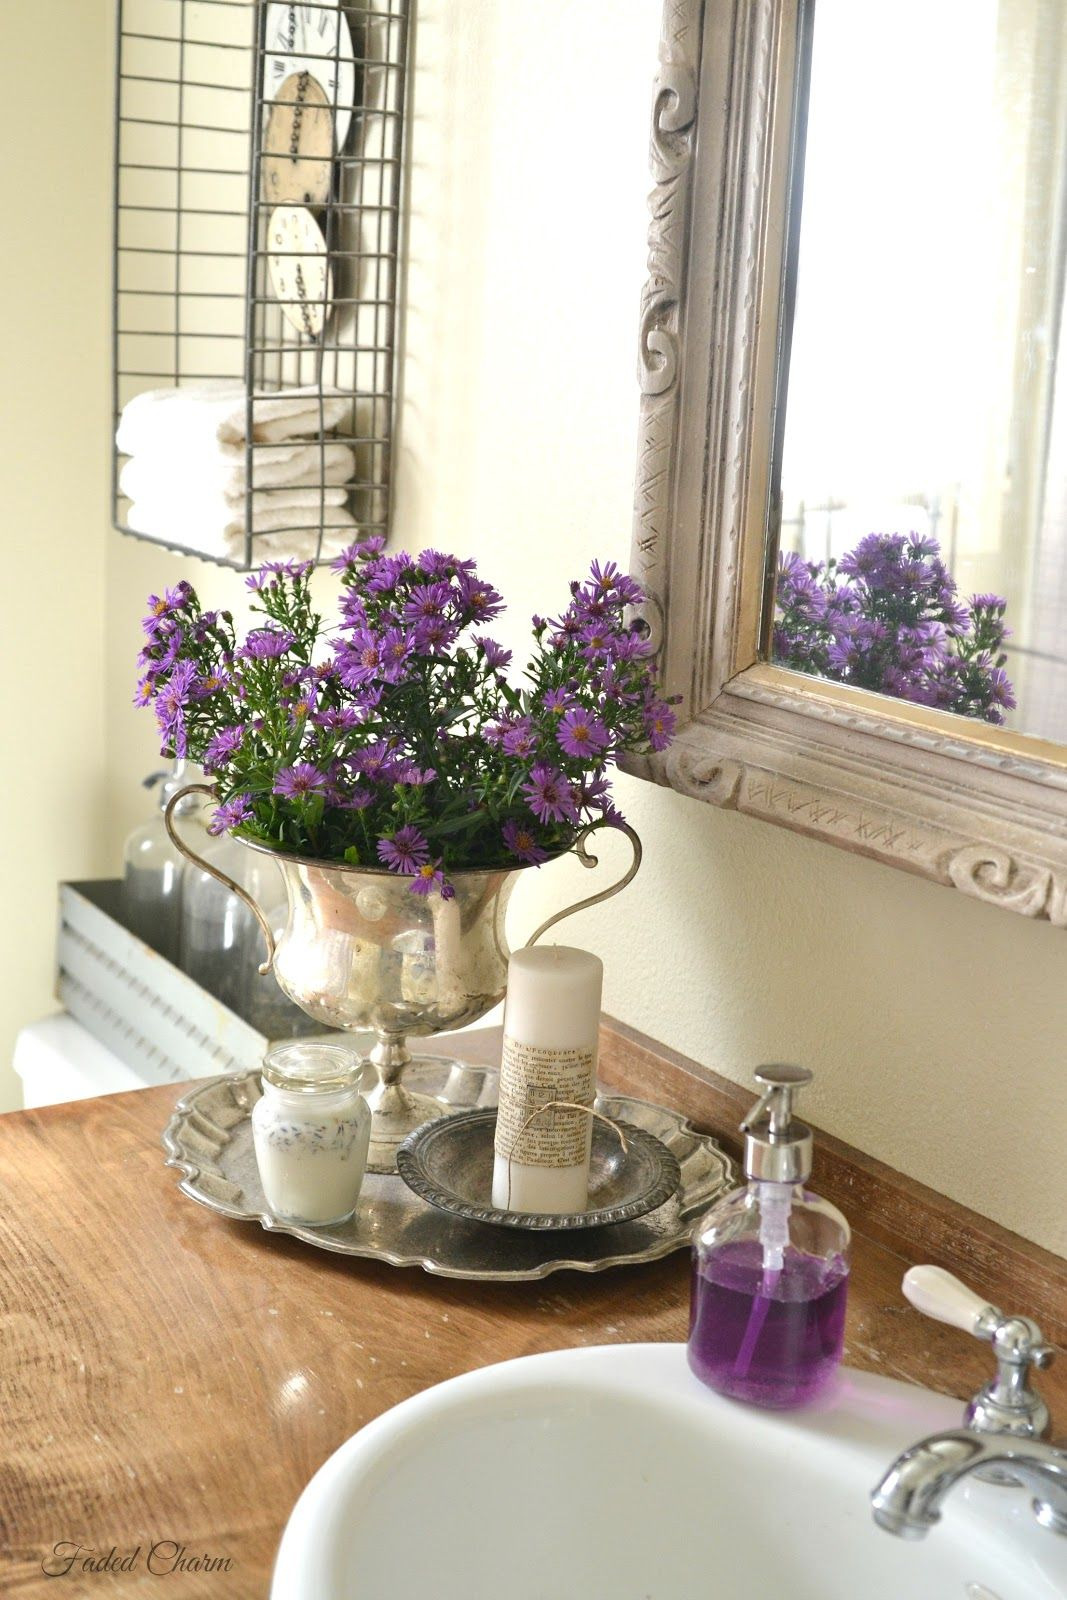 Lilac Bathroom Decor Awesome Faded Charm End Of Summer Blooms